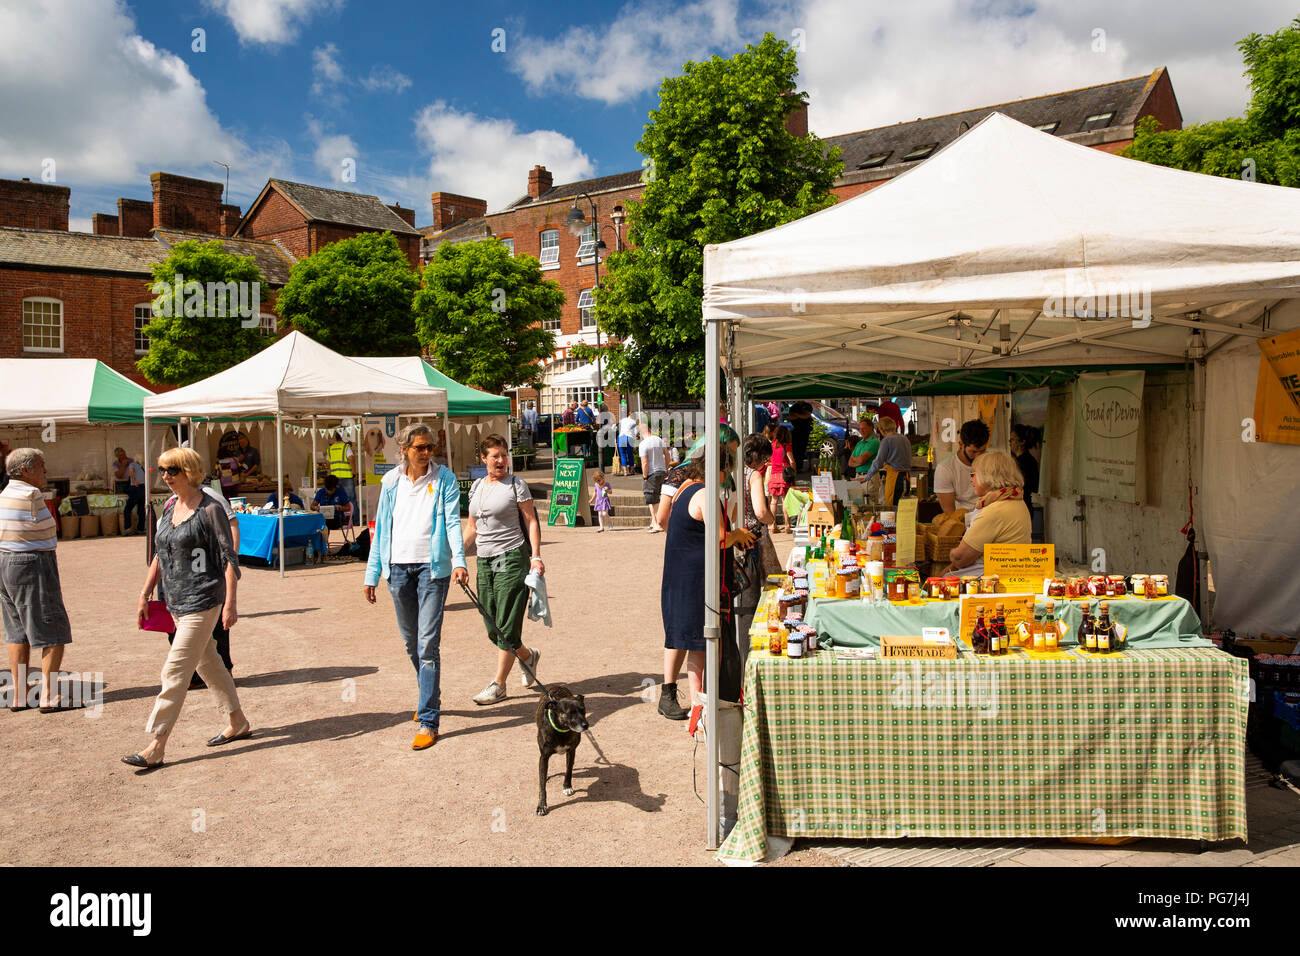 UK, England, Devon, Crediton, Market Square, twice monthly Farmers Market in progress Stock Photo